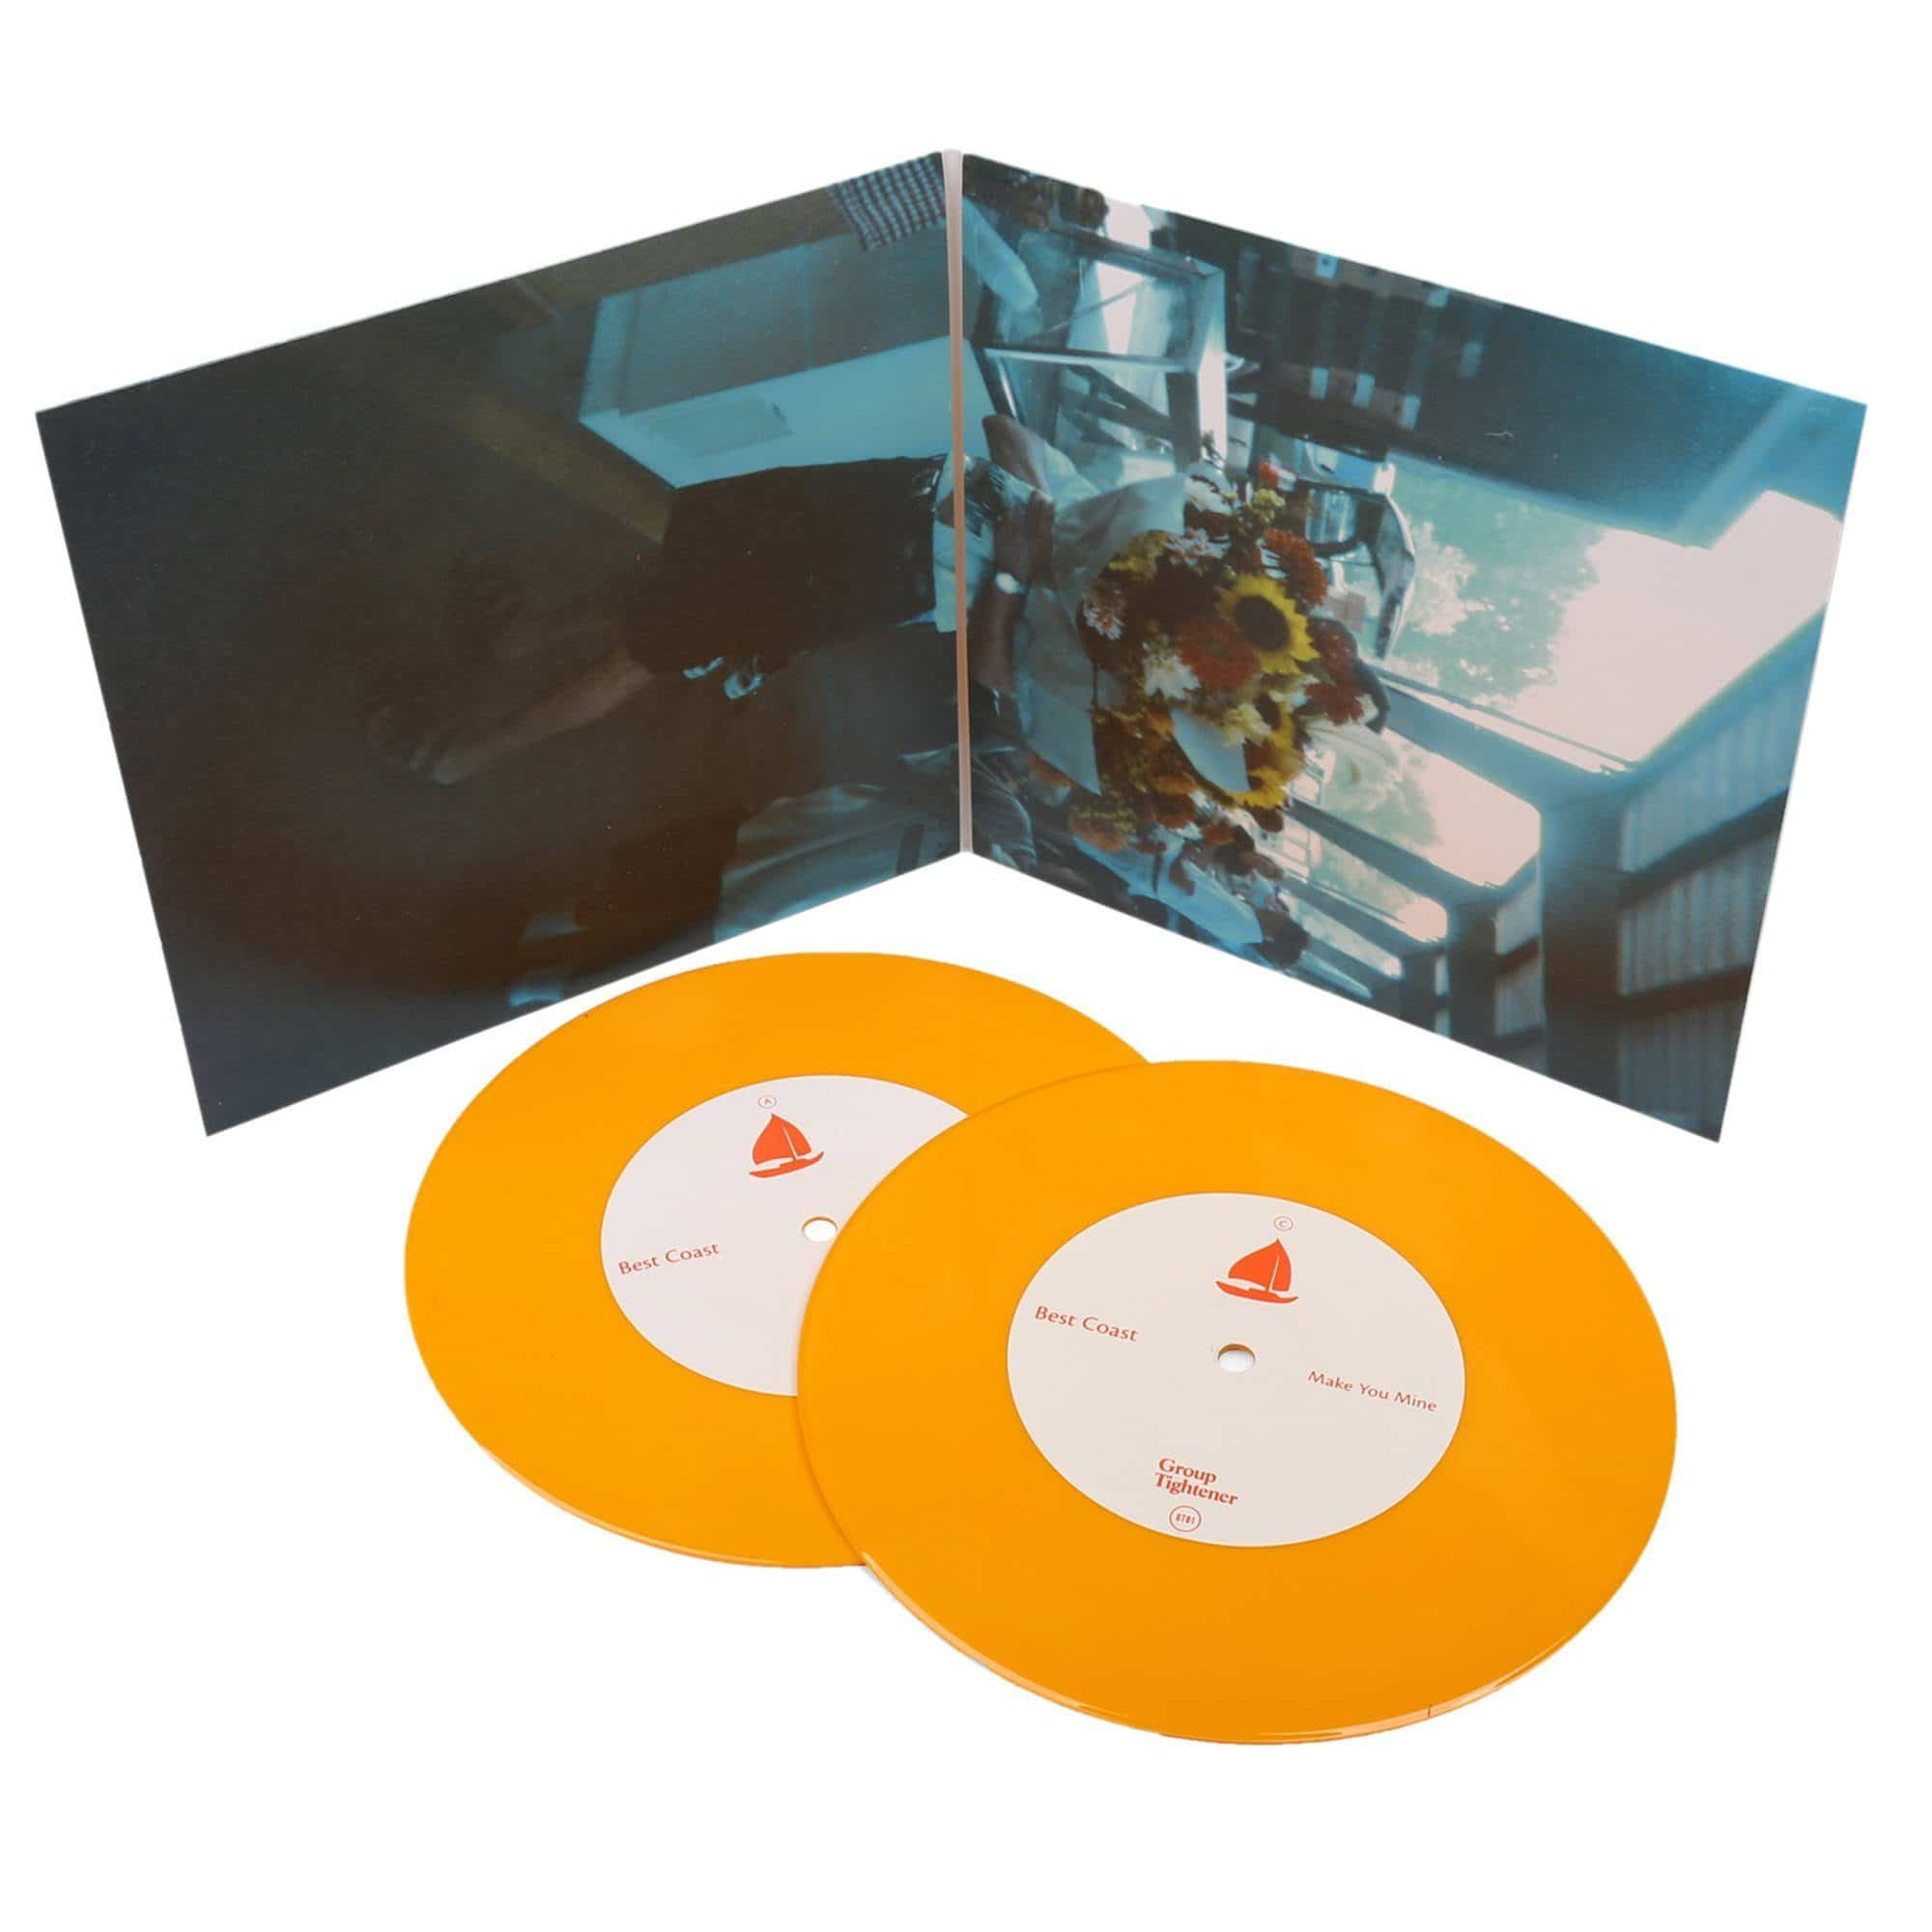 "'Make You Mine' Limited Double 7"" Vinyl"